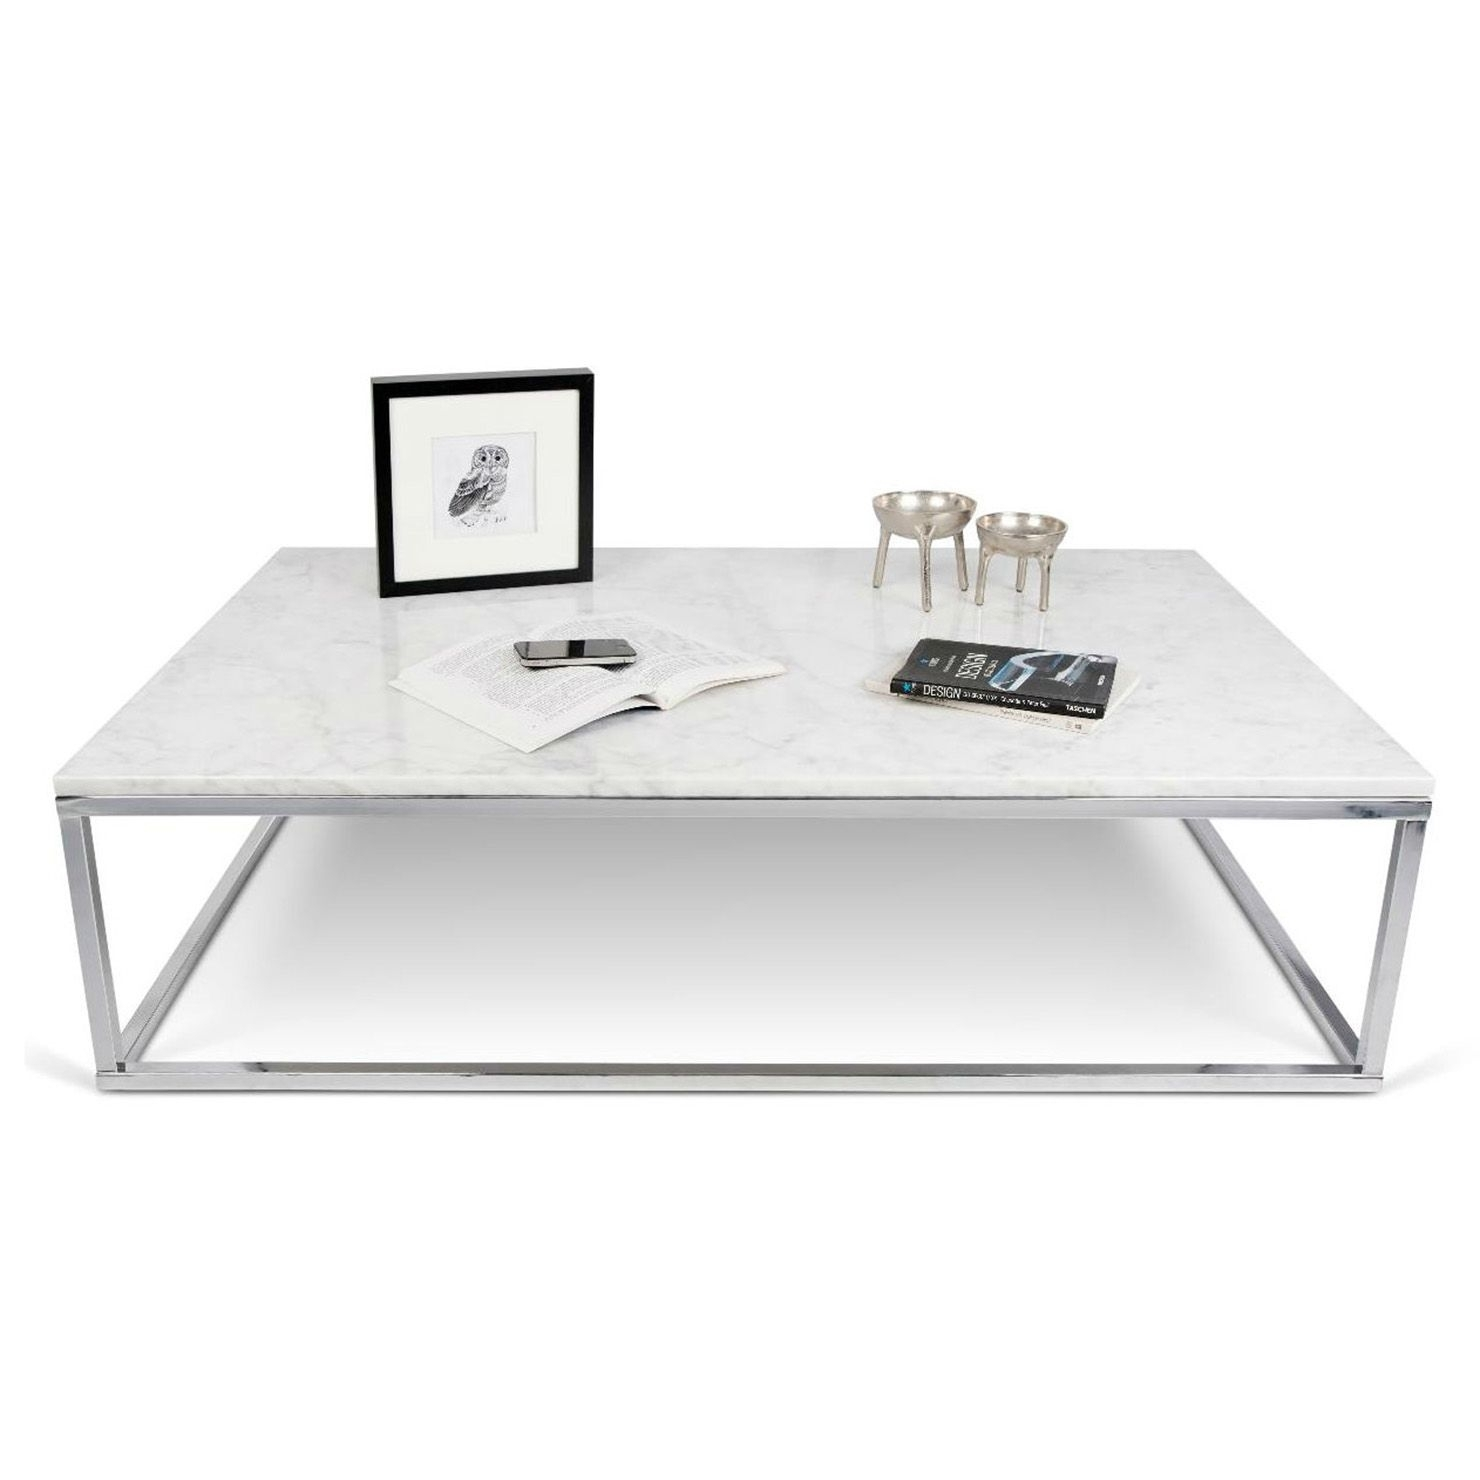 Prairie Marble Rectangular Coffee Table In White | Achica For Element Ivory Rectangular Coffee Tables (View 11 of 30)